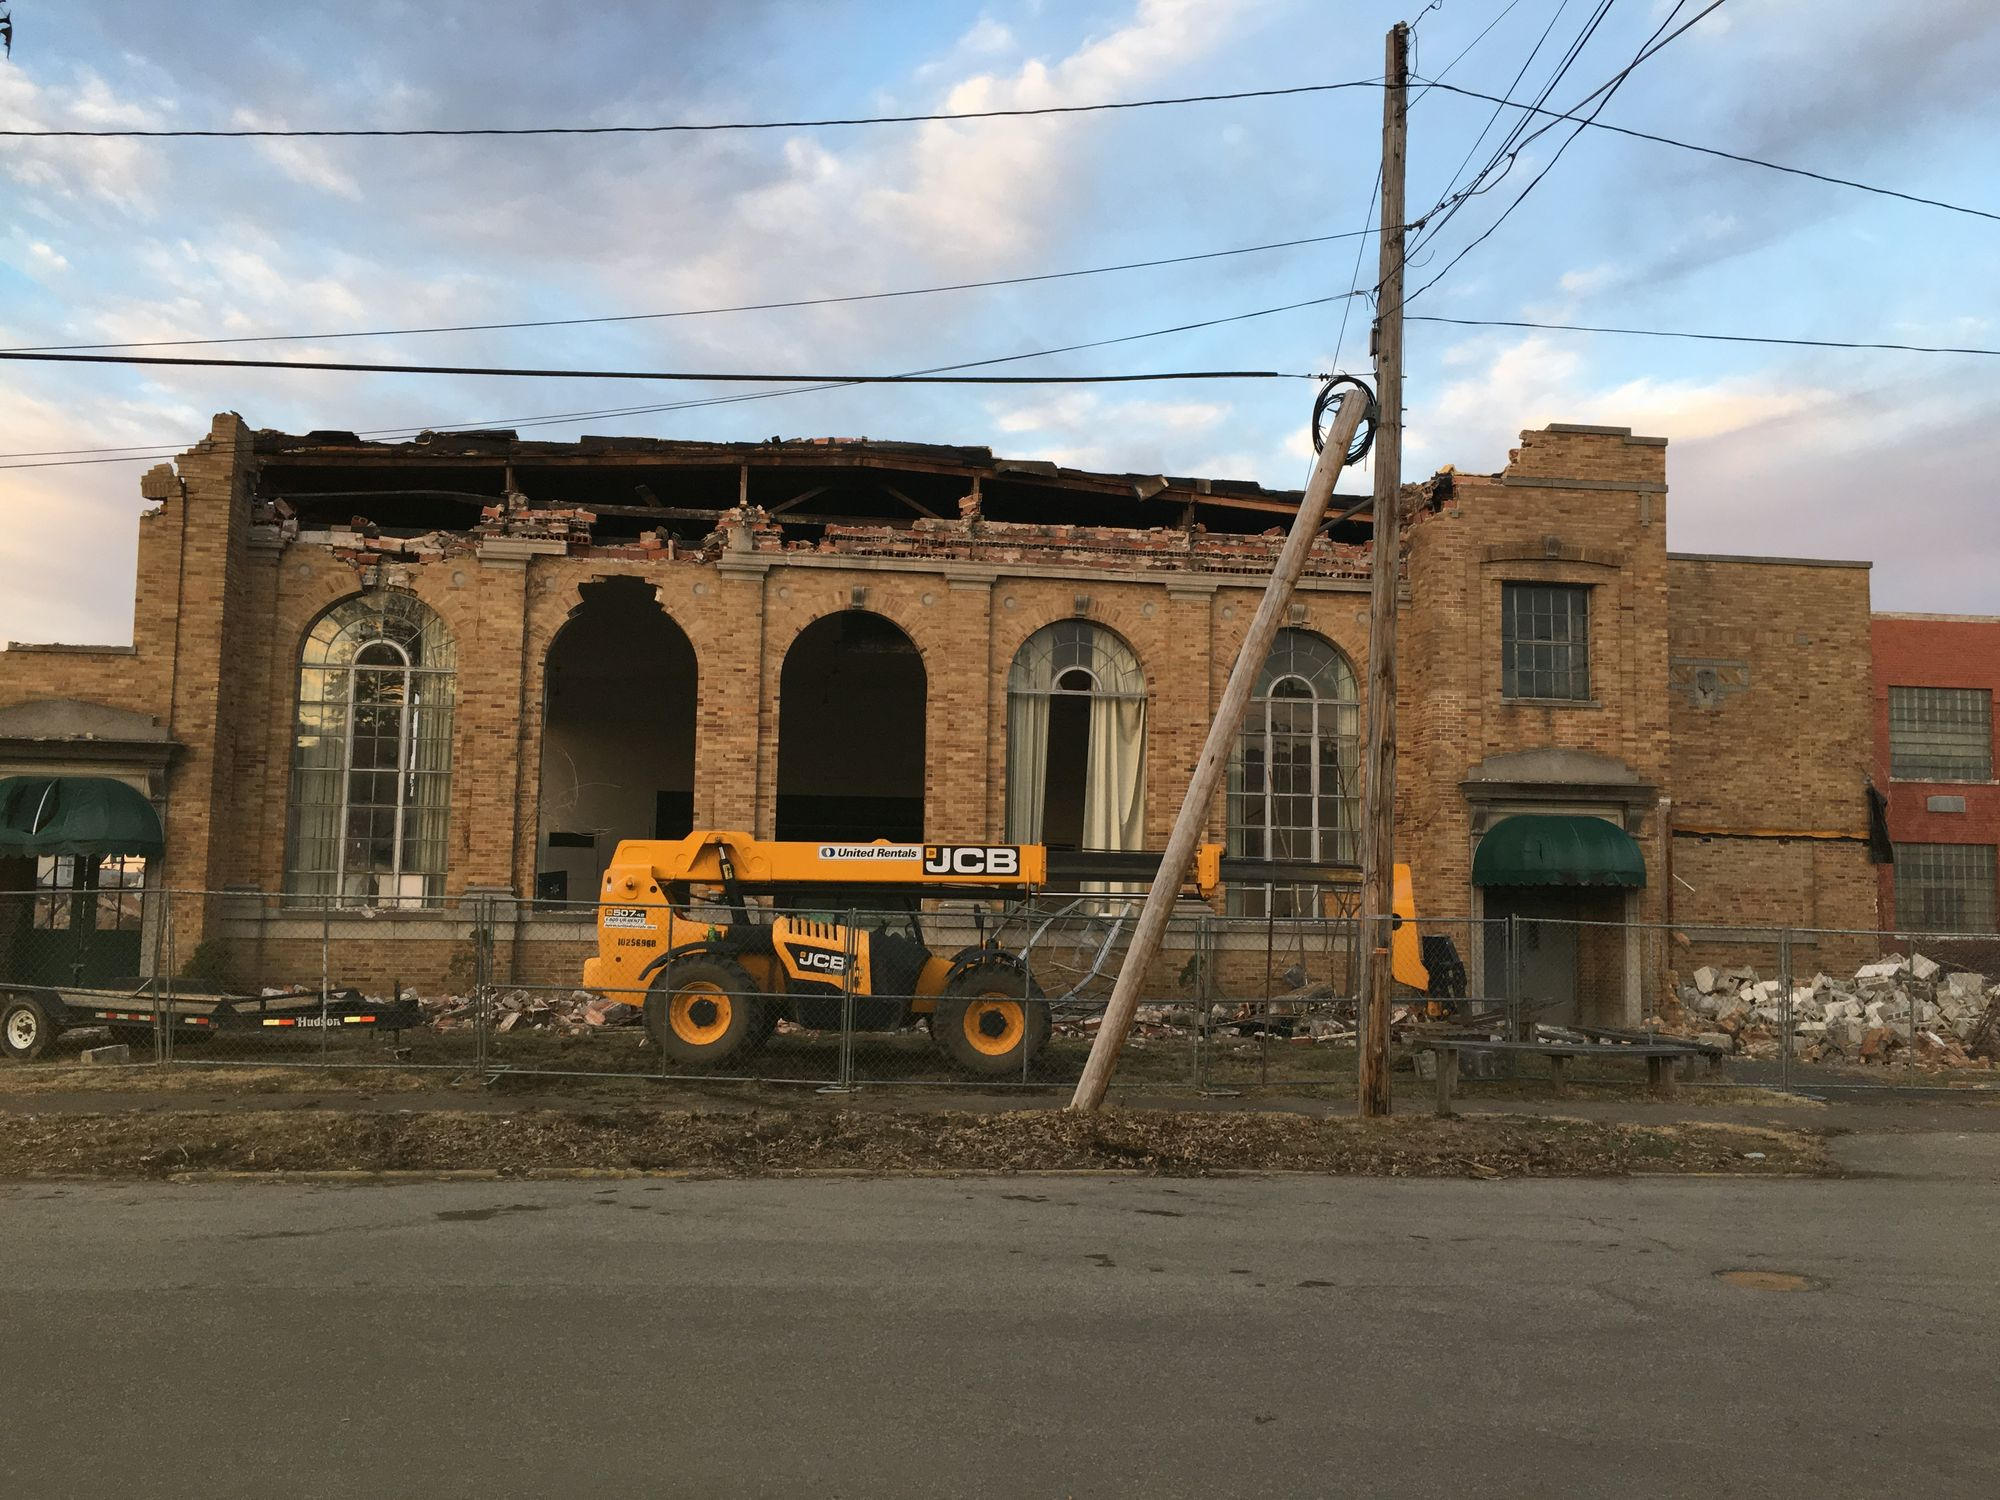 Kenova Elementary School was demolished in January 2018 to make way for commercial development on the property.